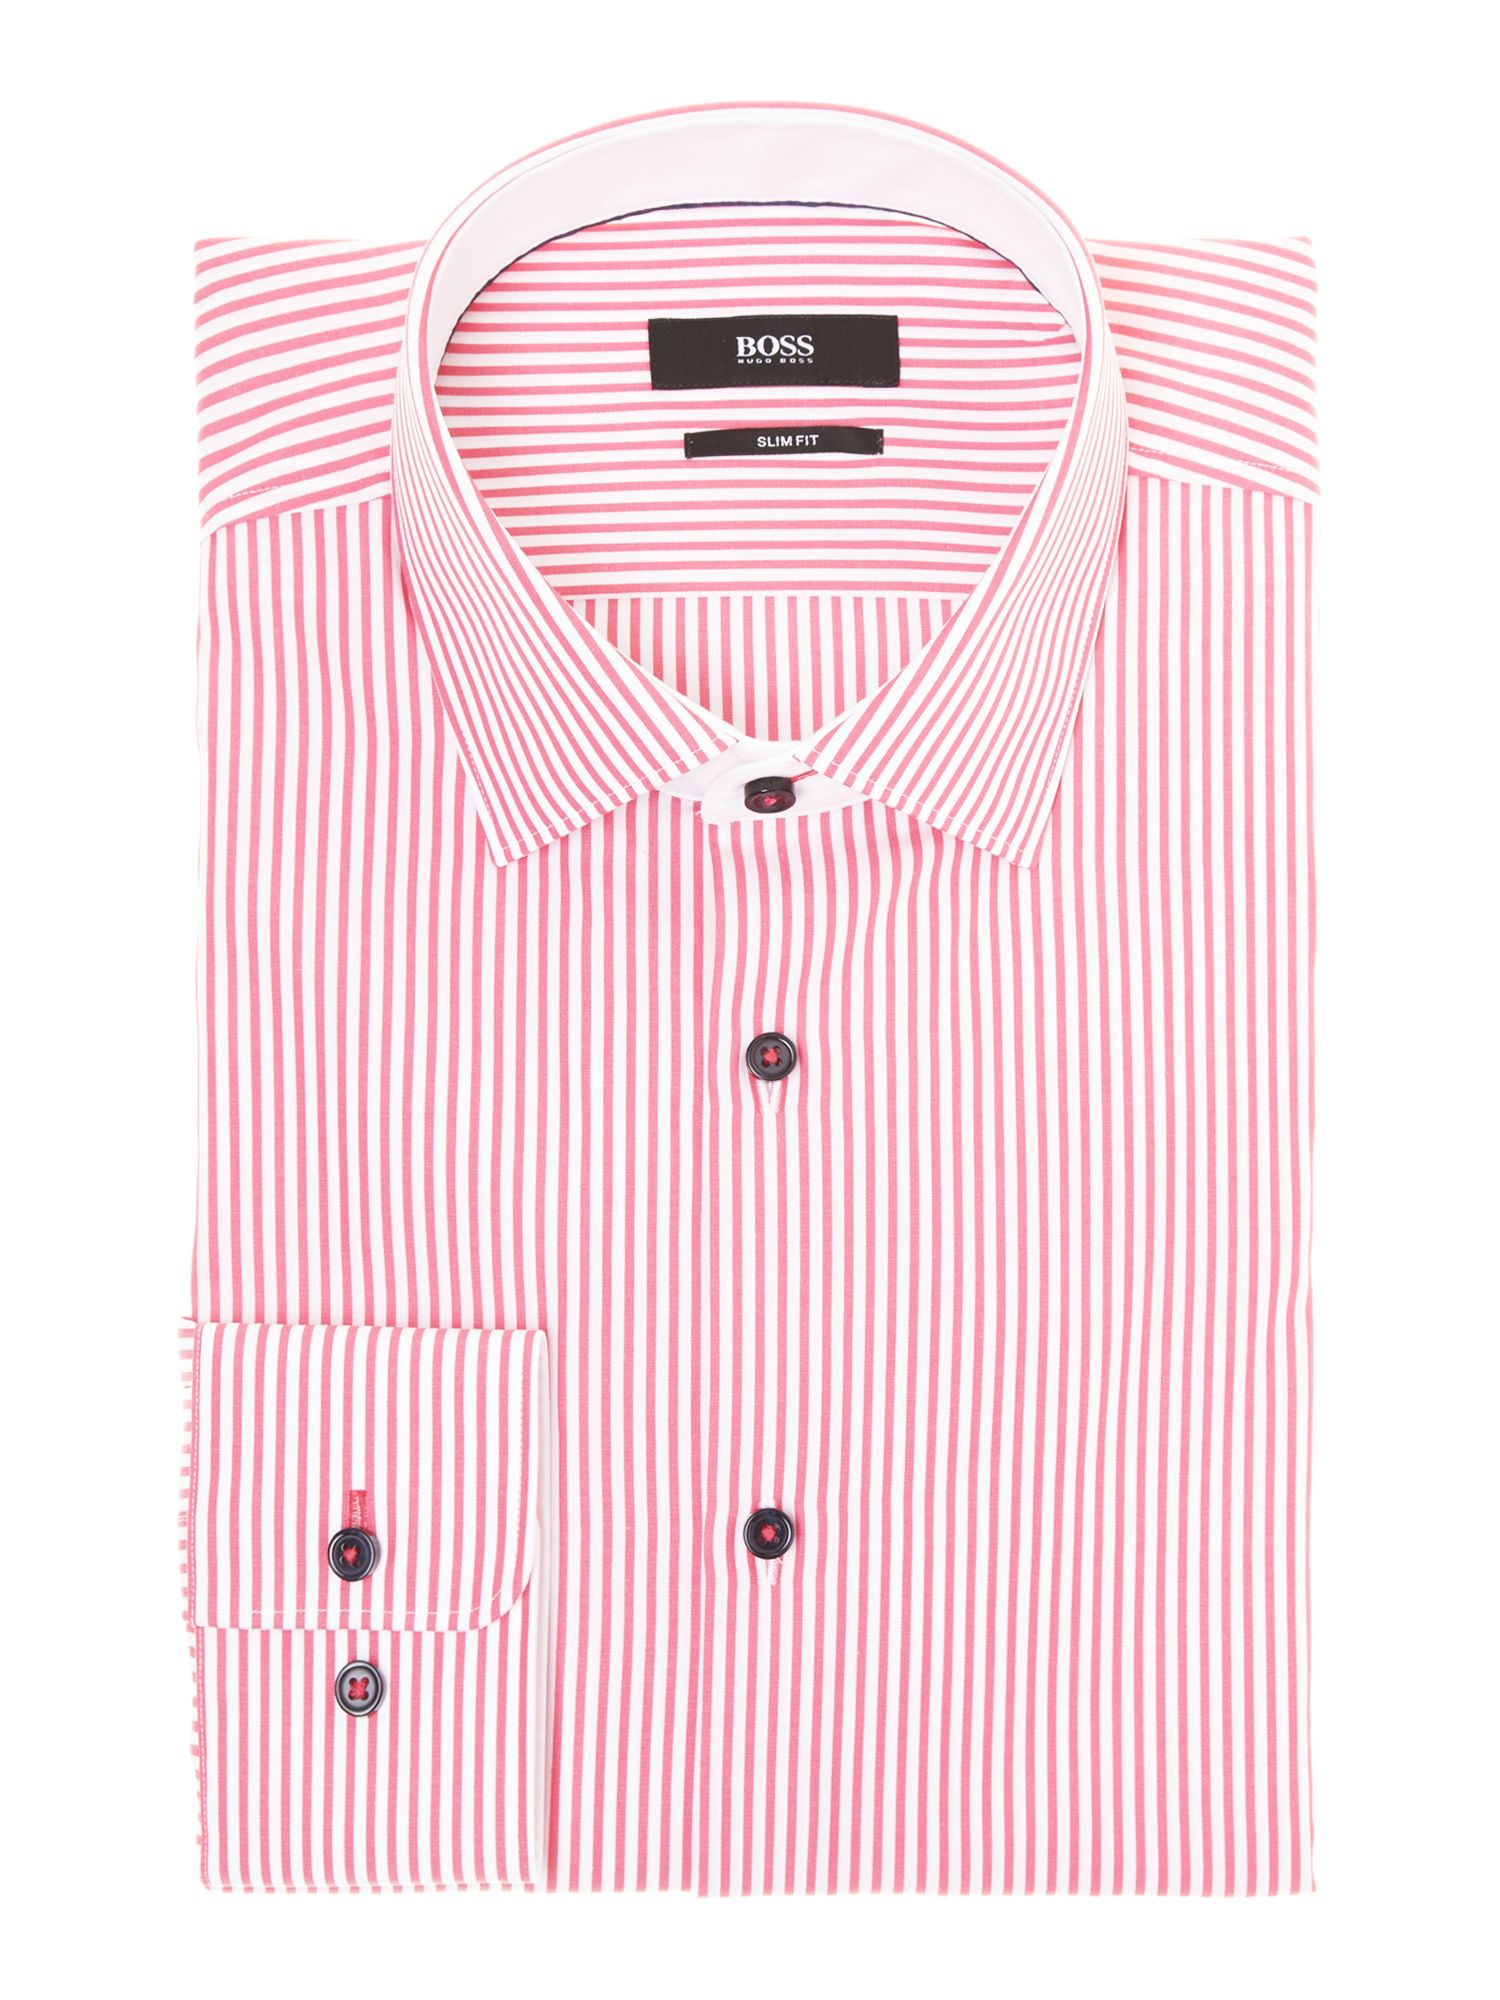 Juri bold stripe slim fit shirt